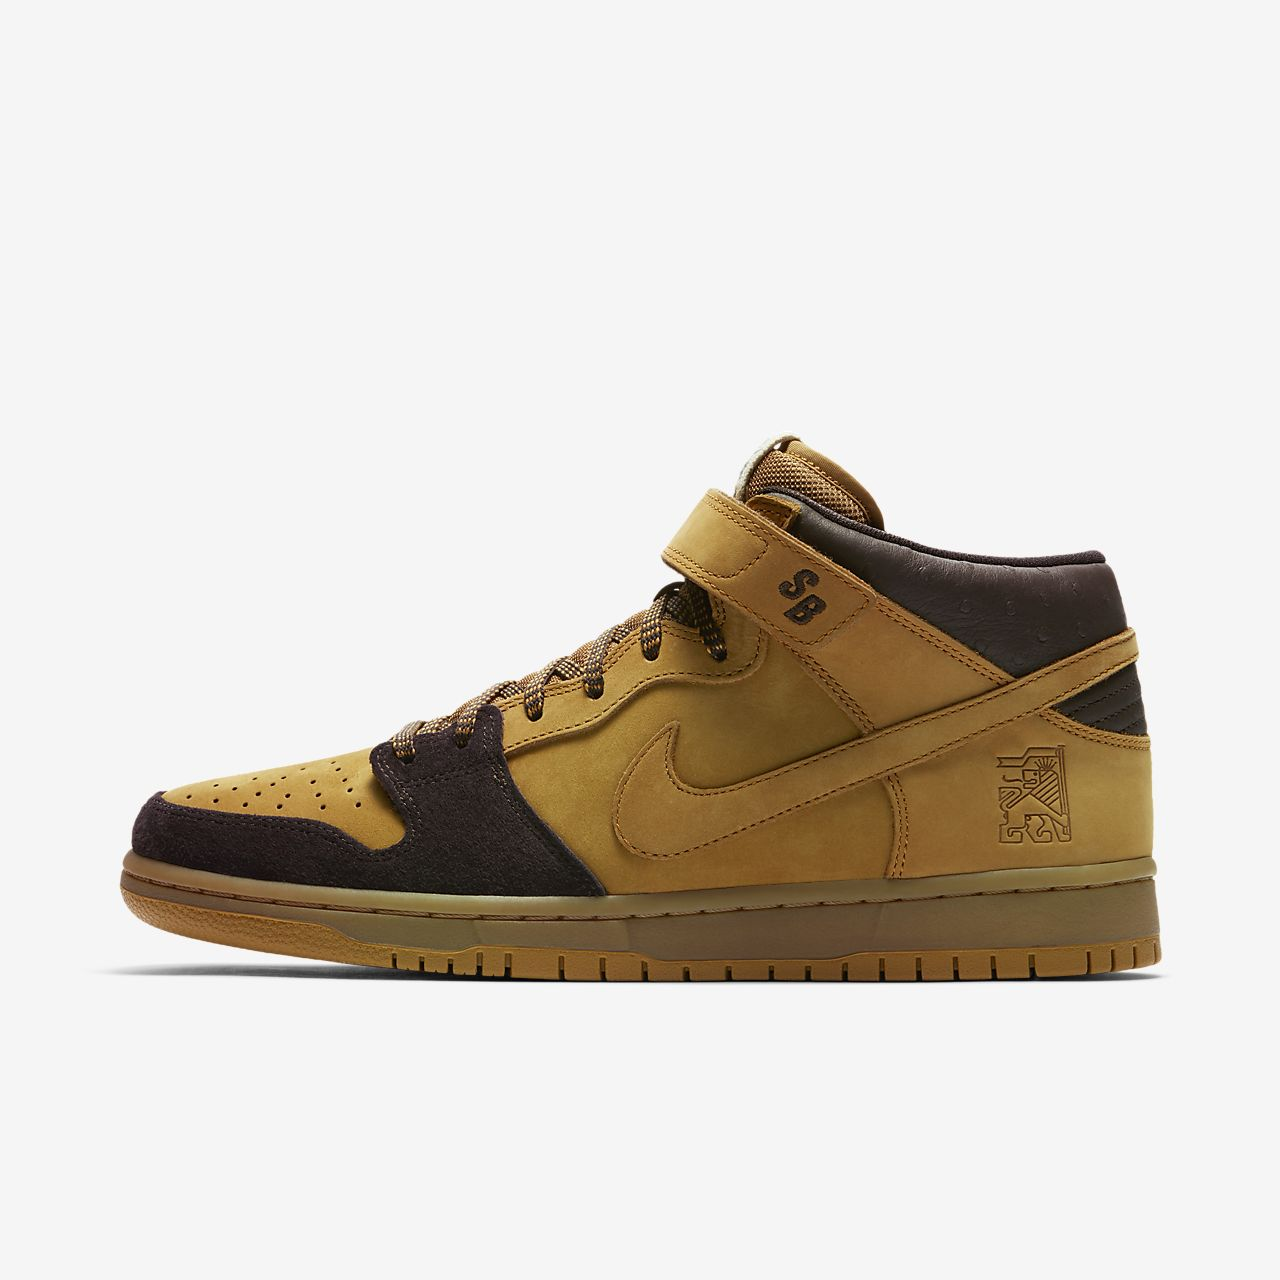 hot sale online 02372 f9c79 Nike SB Dunk Mid Pro Men's Skateboarding Shoe